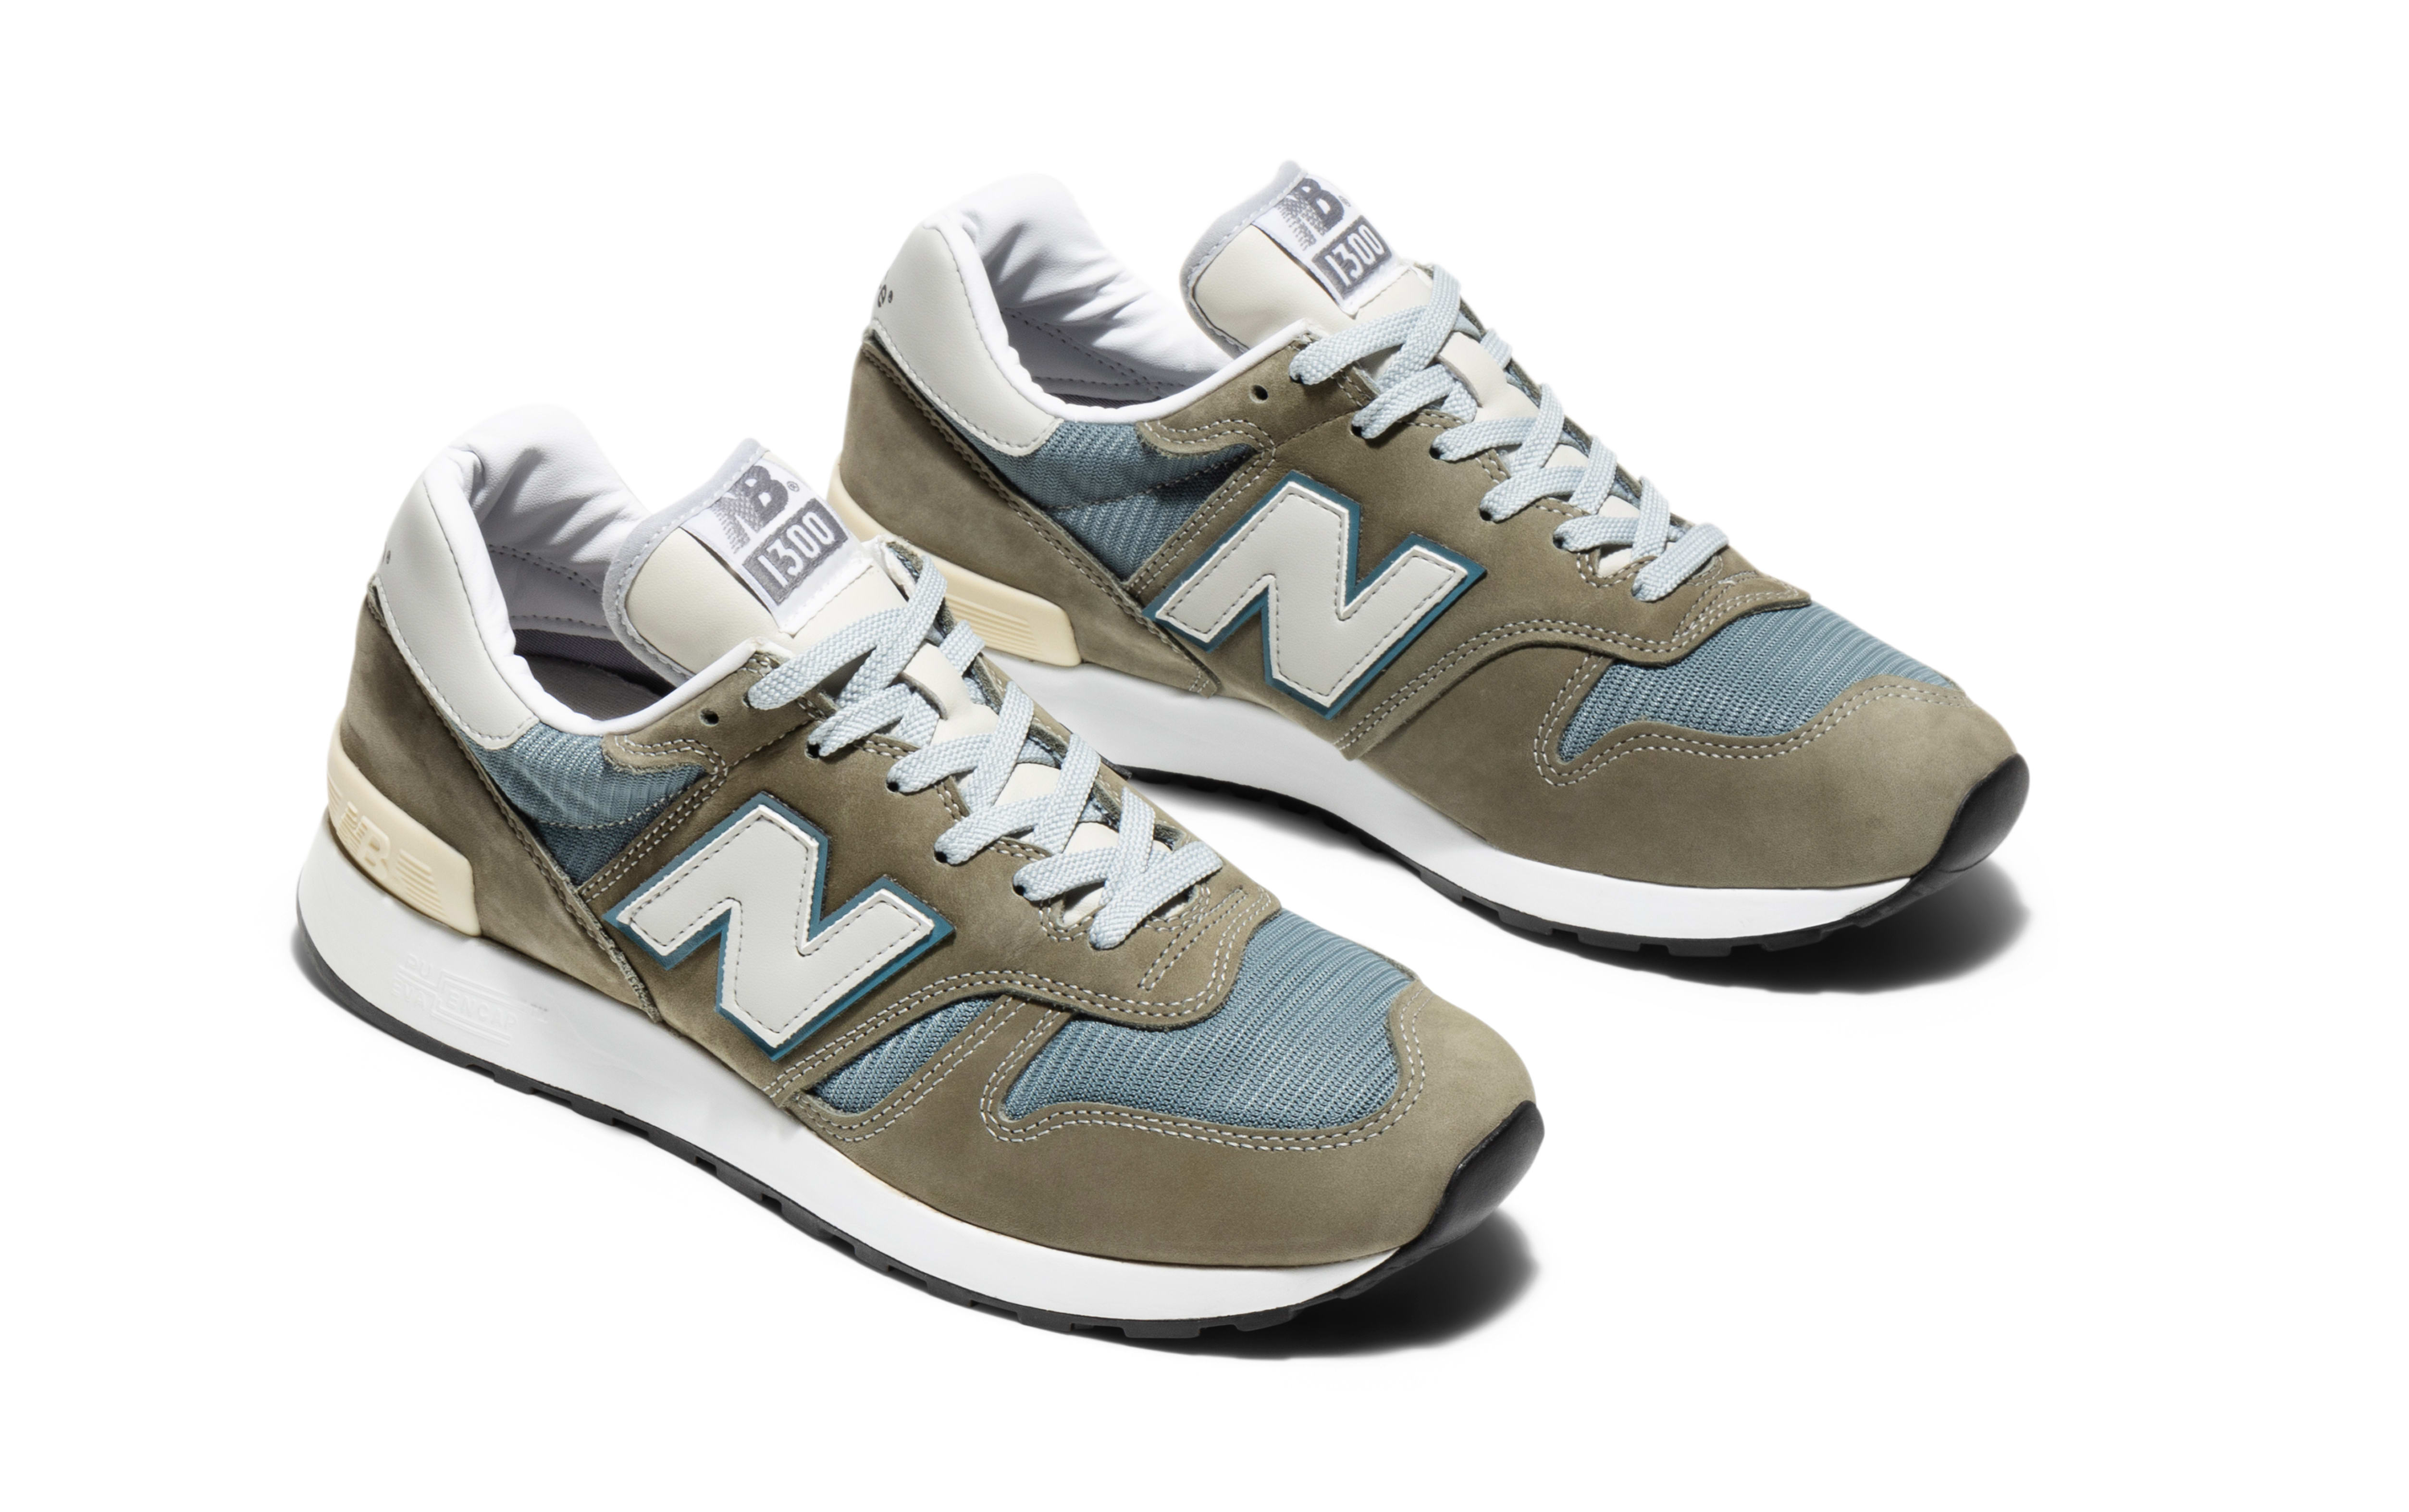 This New Balance Sneaker Is Only Available Every Five Years